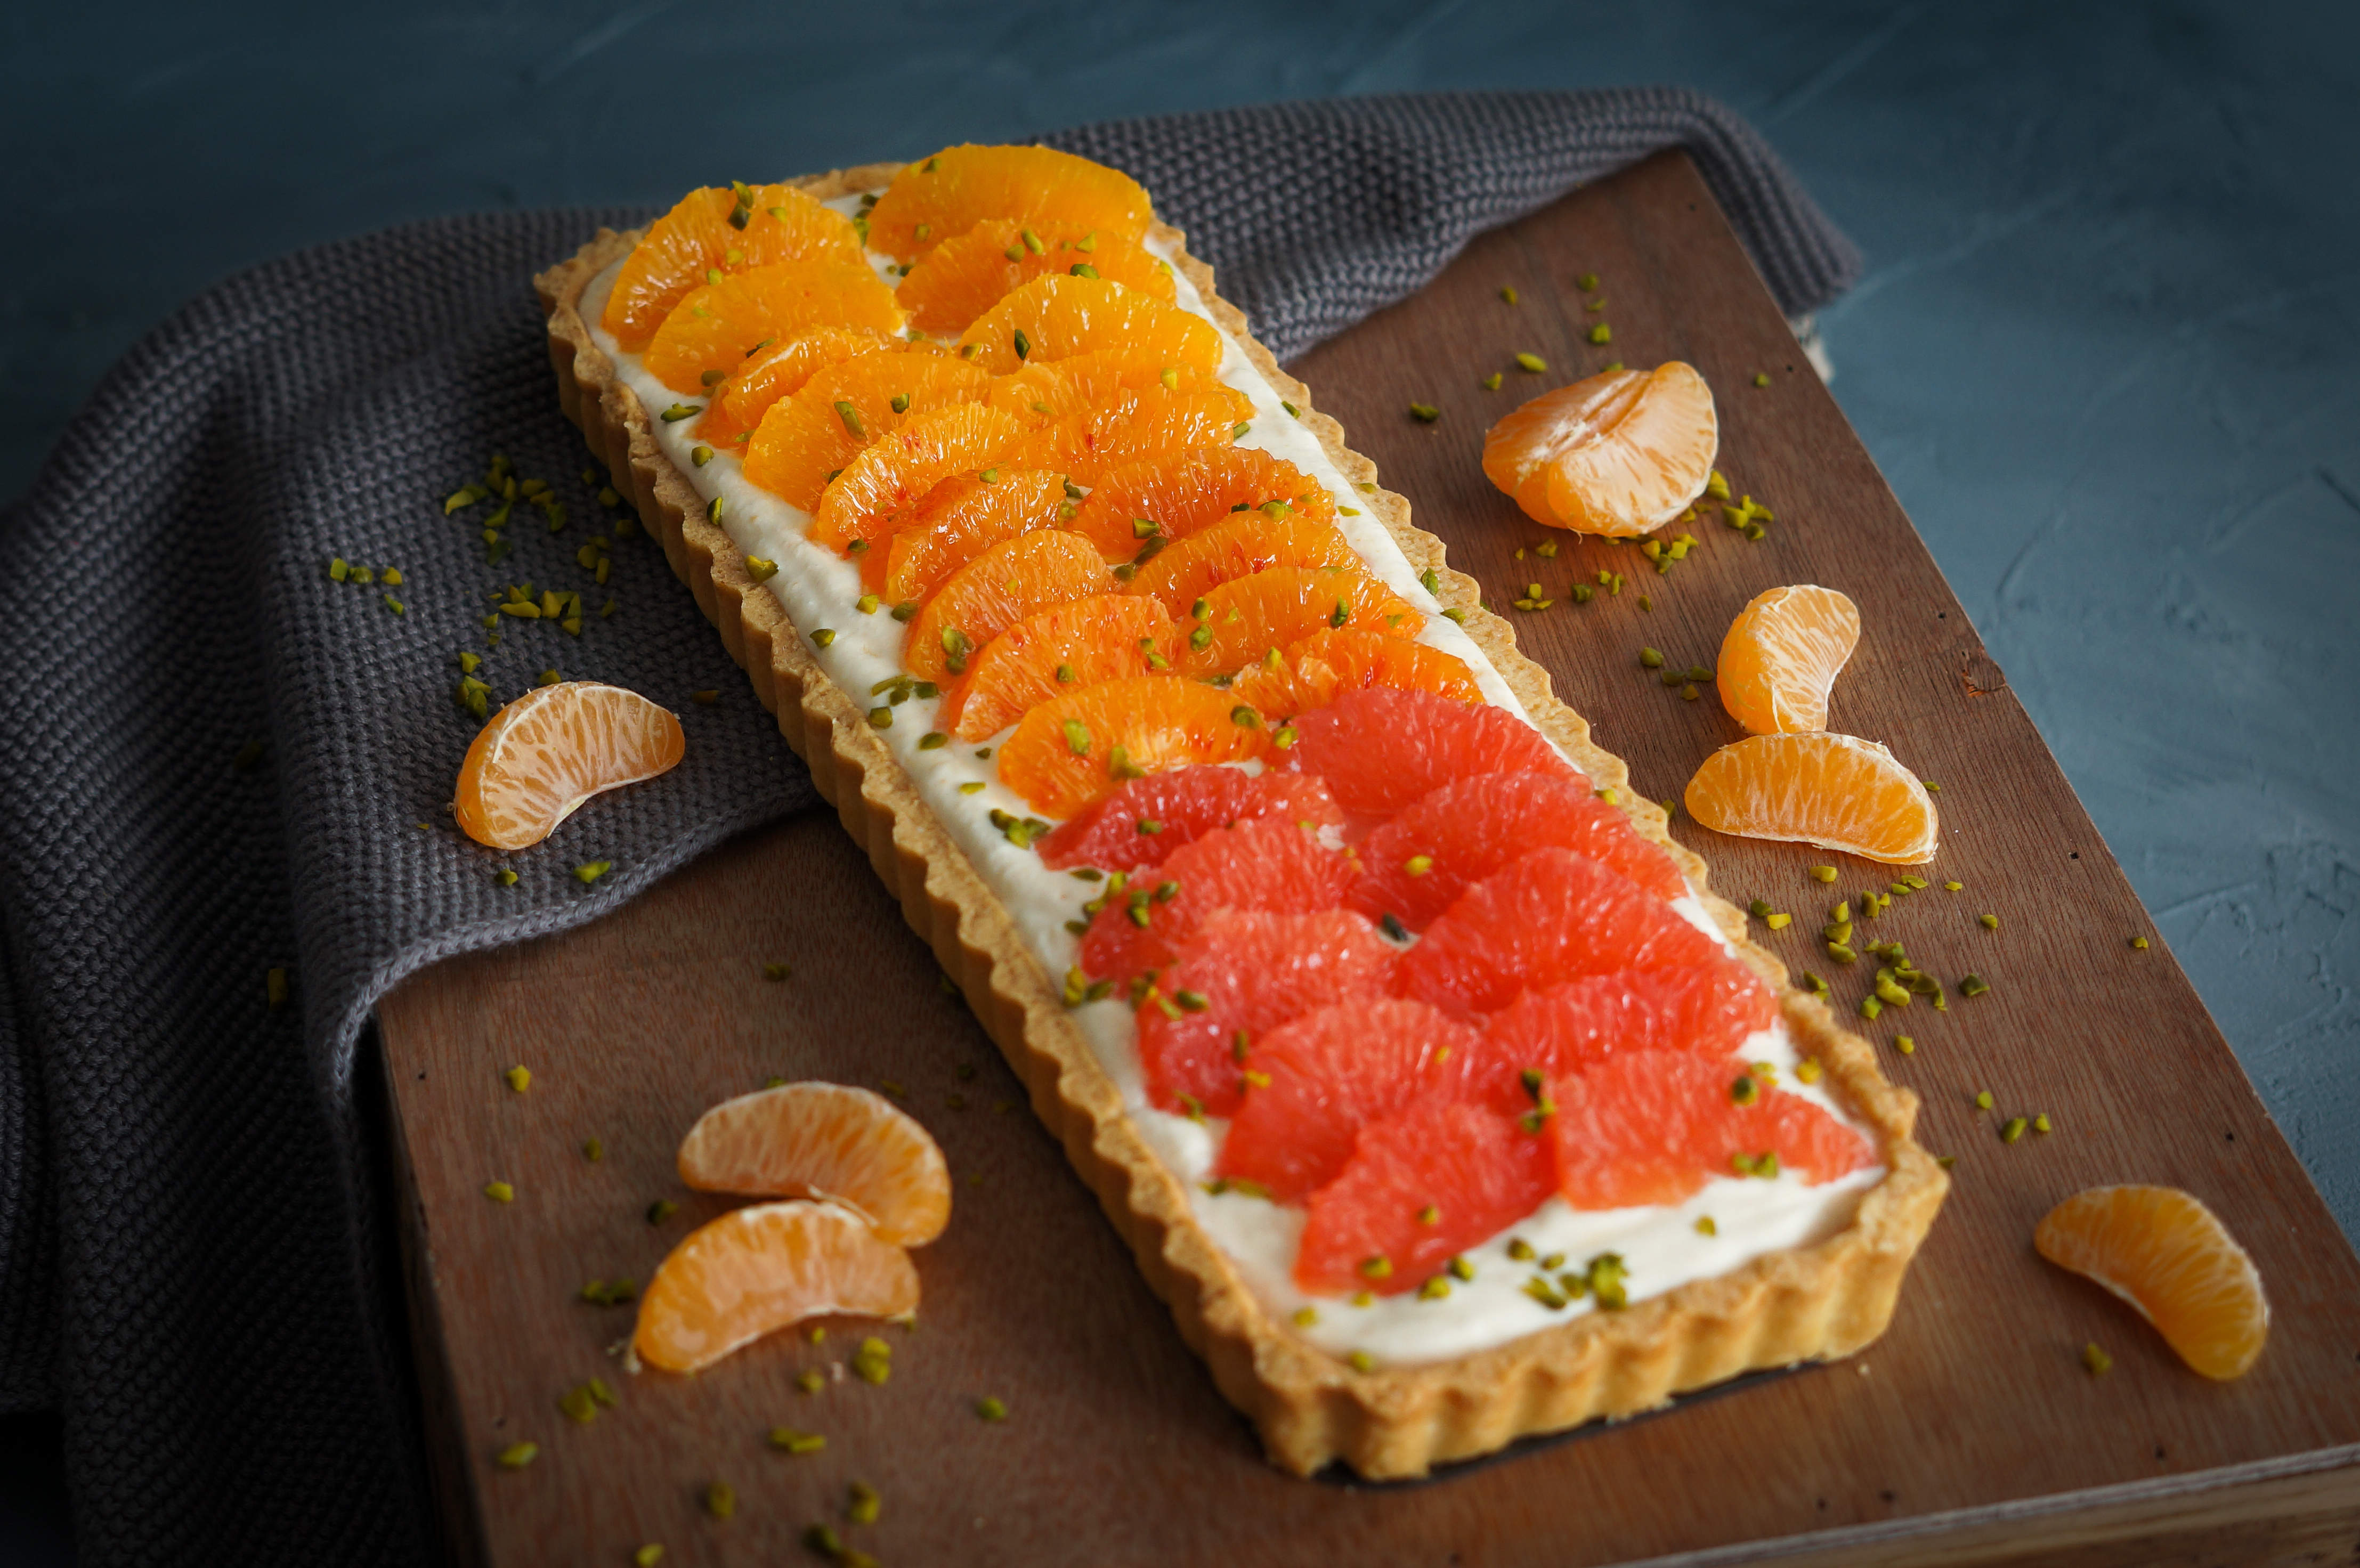 backen, zitrus, citrusm tarte, mürbeteig, ricotta, grapefruit, mandarinen, orangen, blutorange, winter